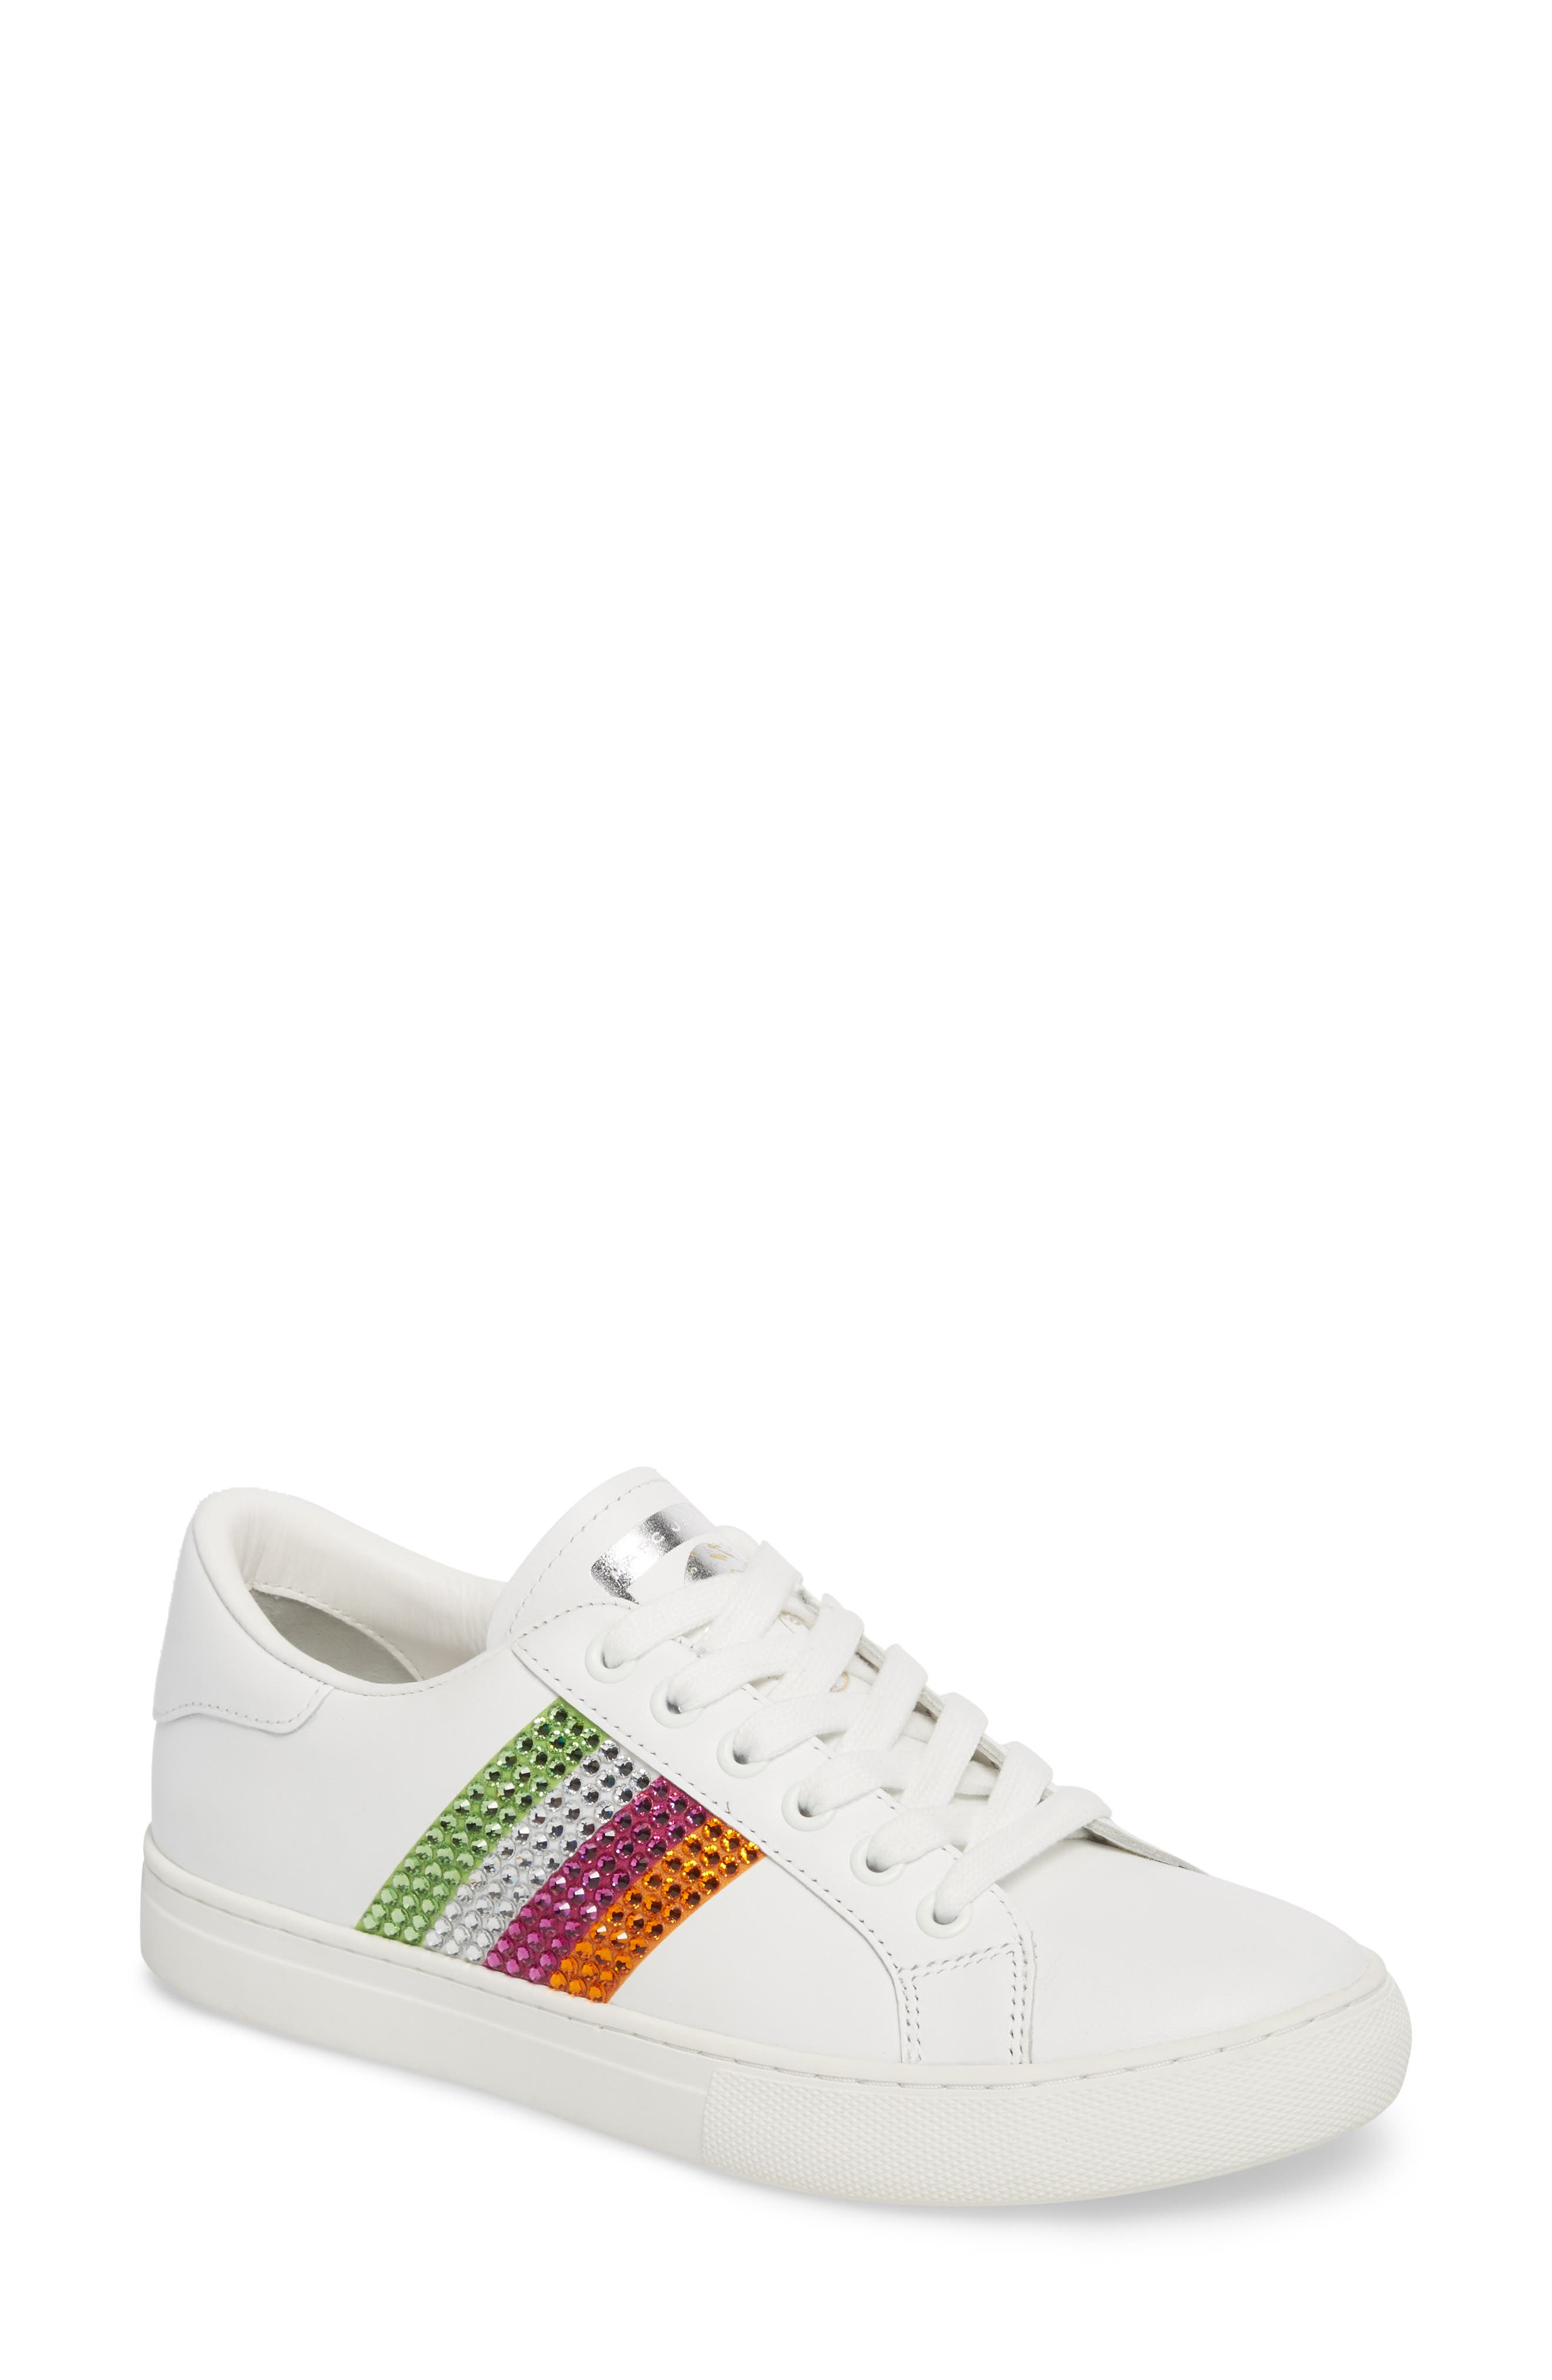 MARC JACOBS Empire Crystal Embellished Sneaker (Women)